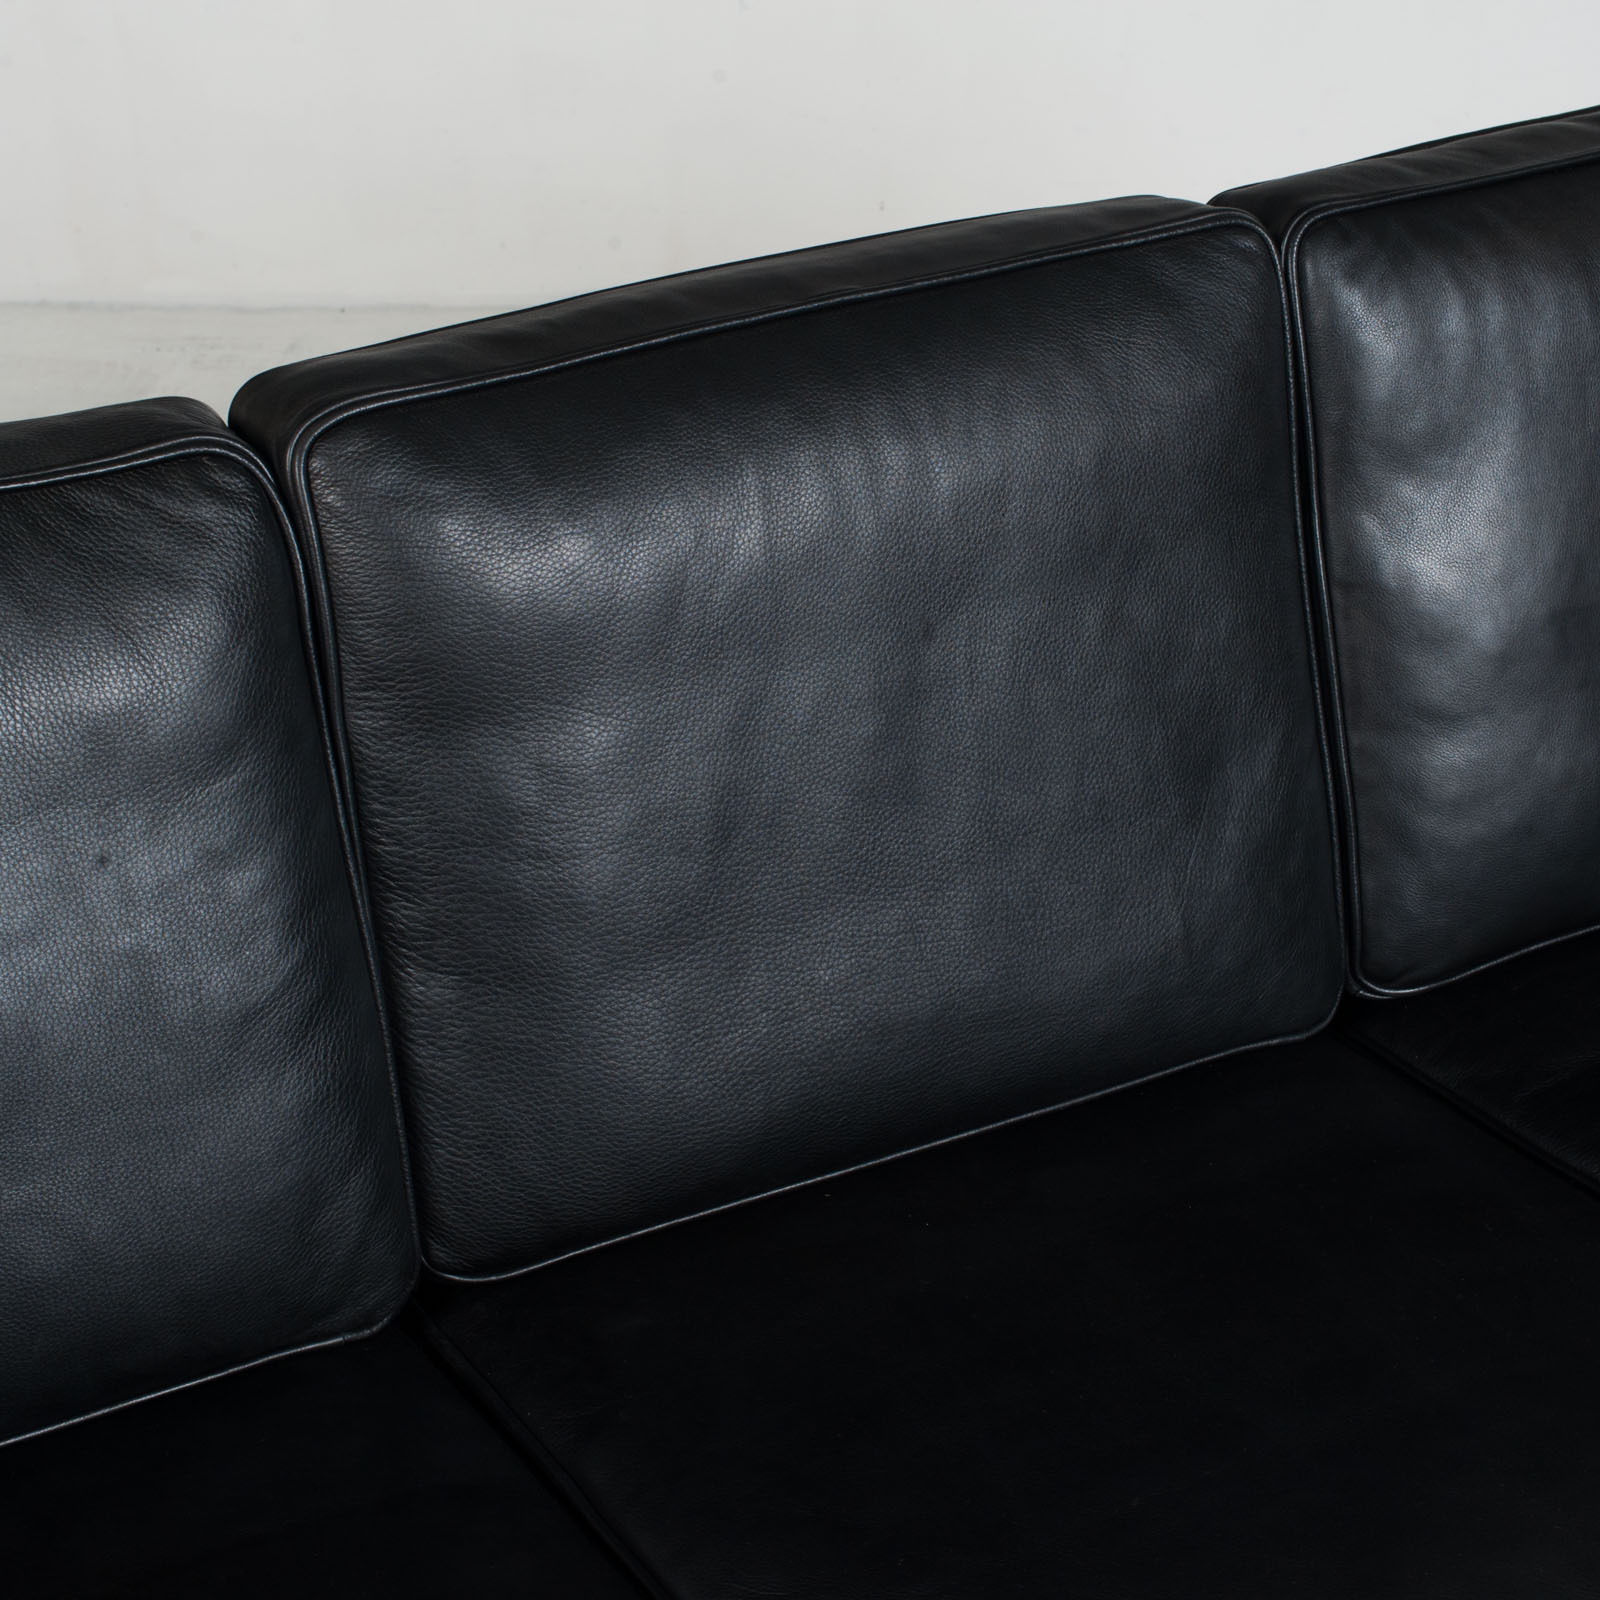 3 Seat Sofa In Black Aniline Leather 1960s Denmark 07